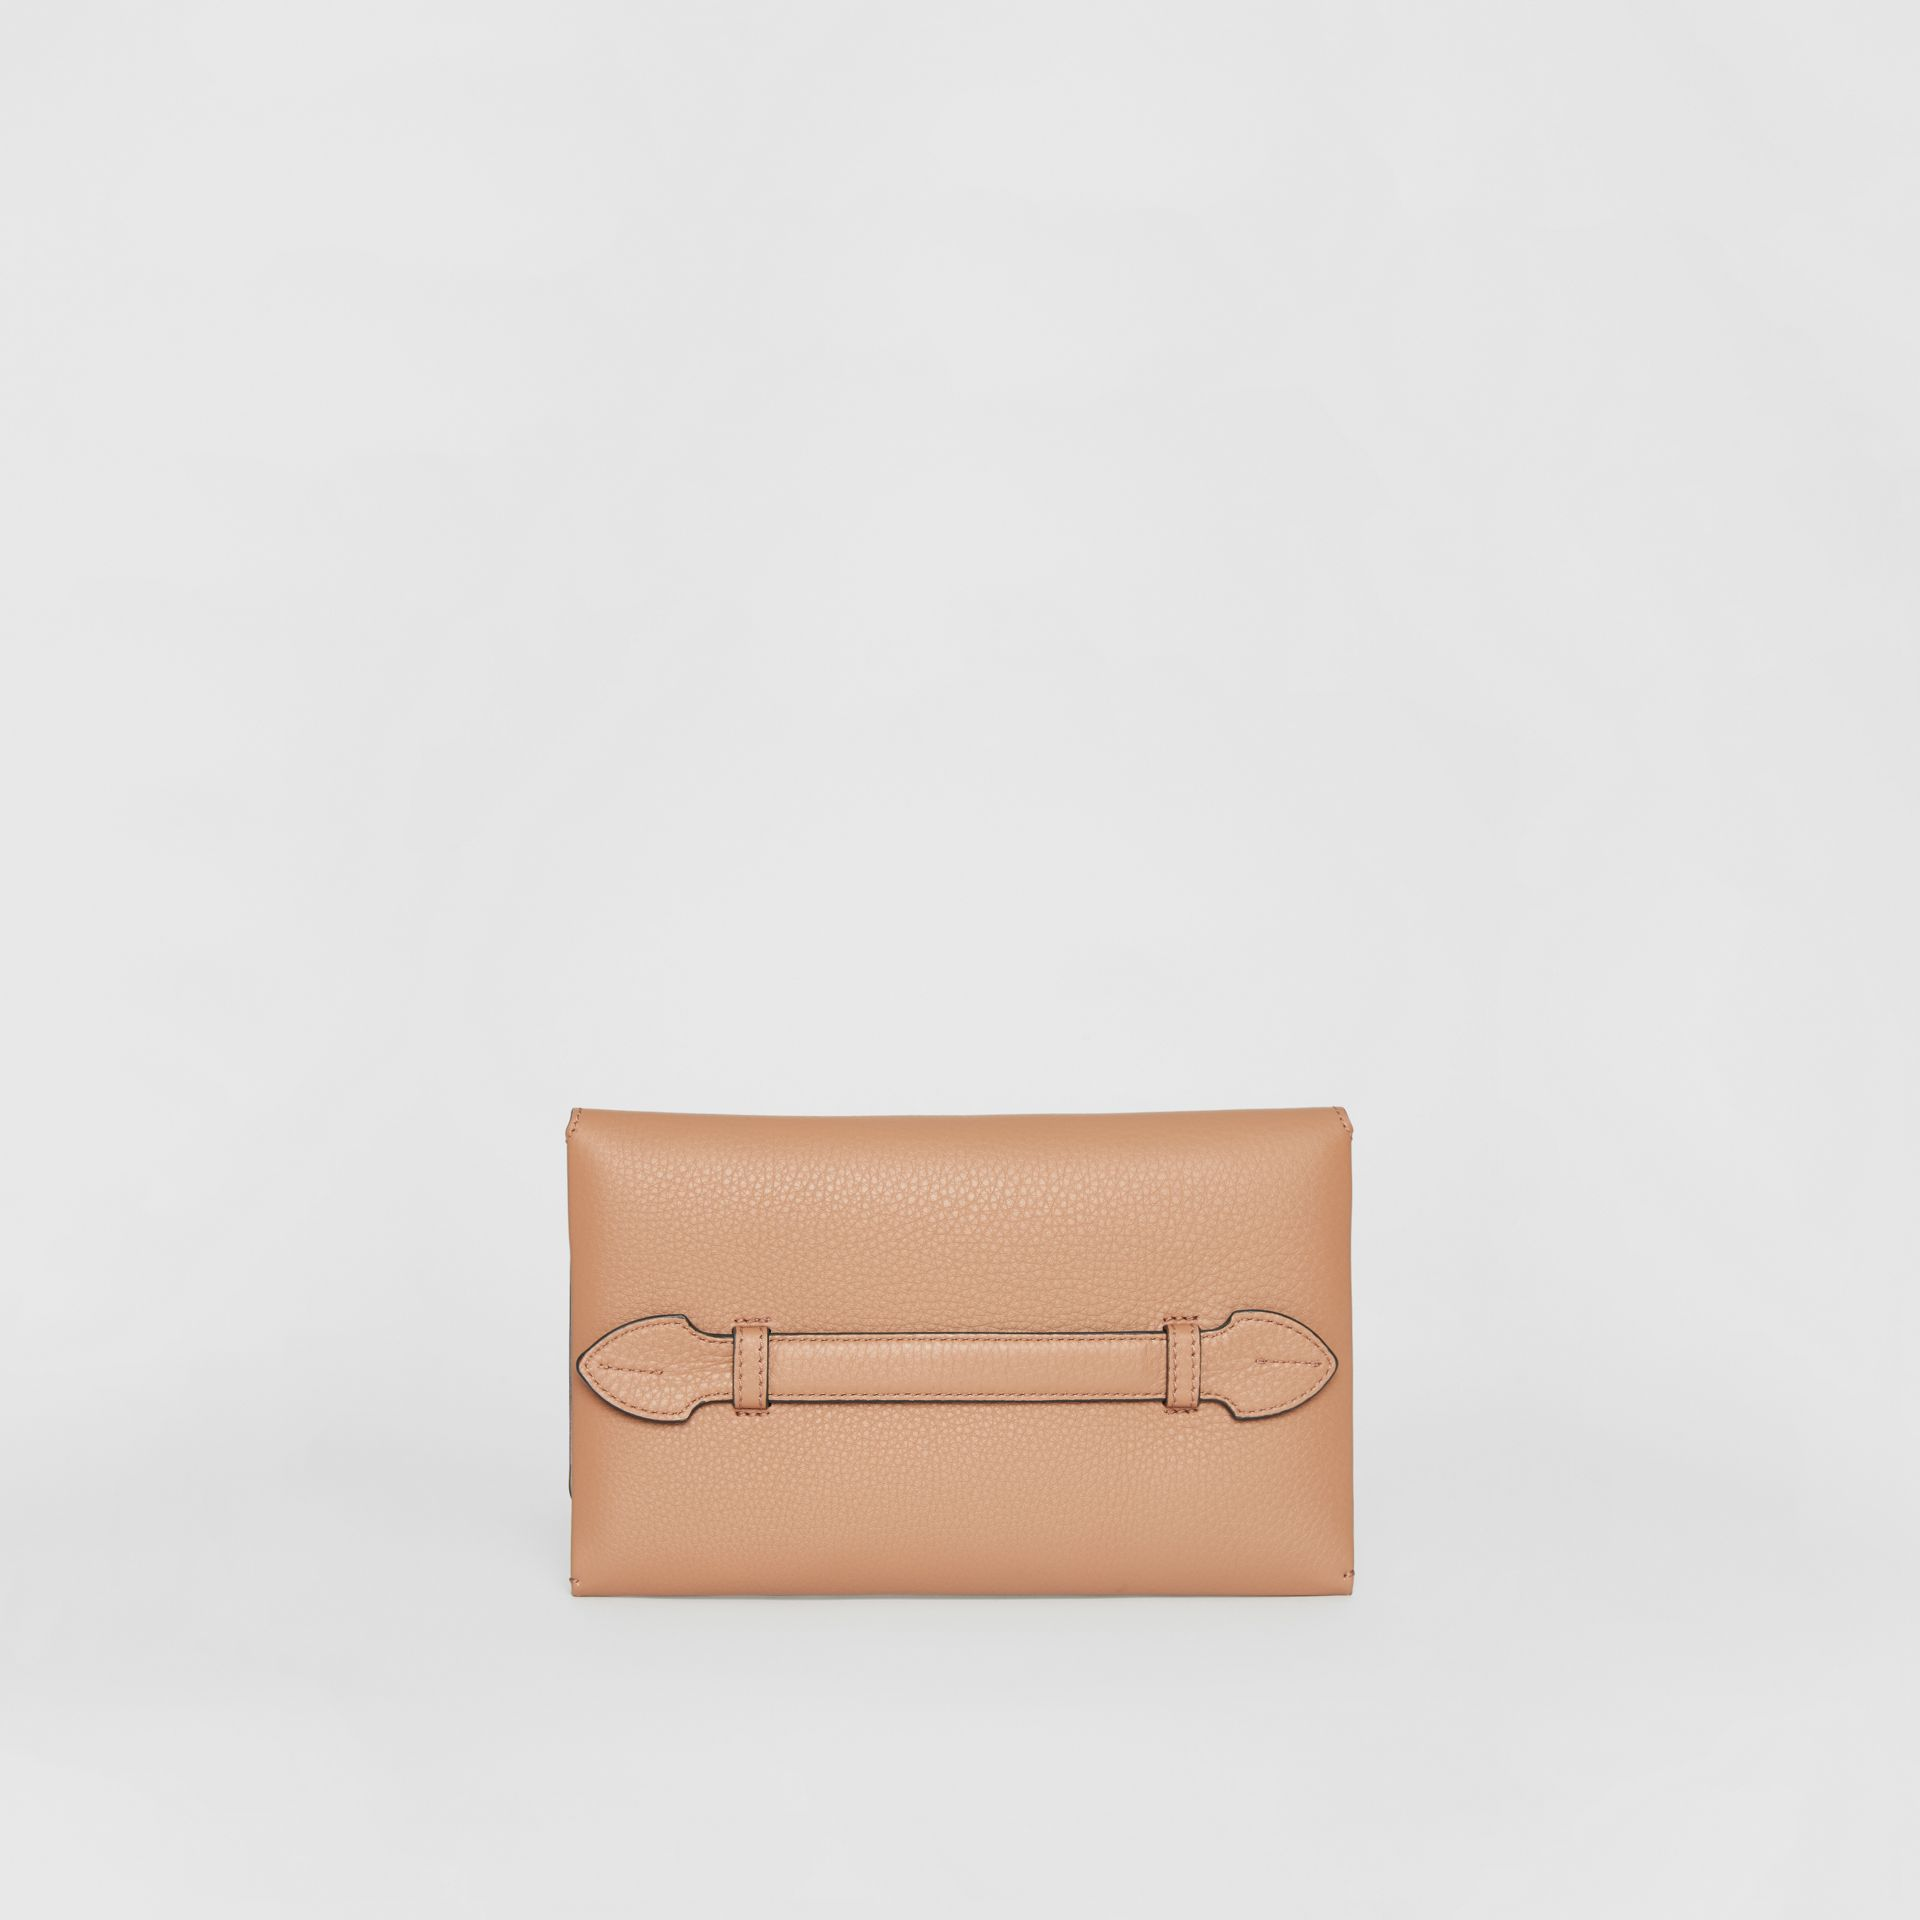 Two-tone Leather Wristlet Clutch in Light Camel - Women | Burberry - gallery image 5